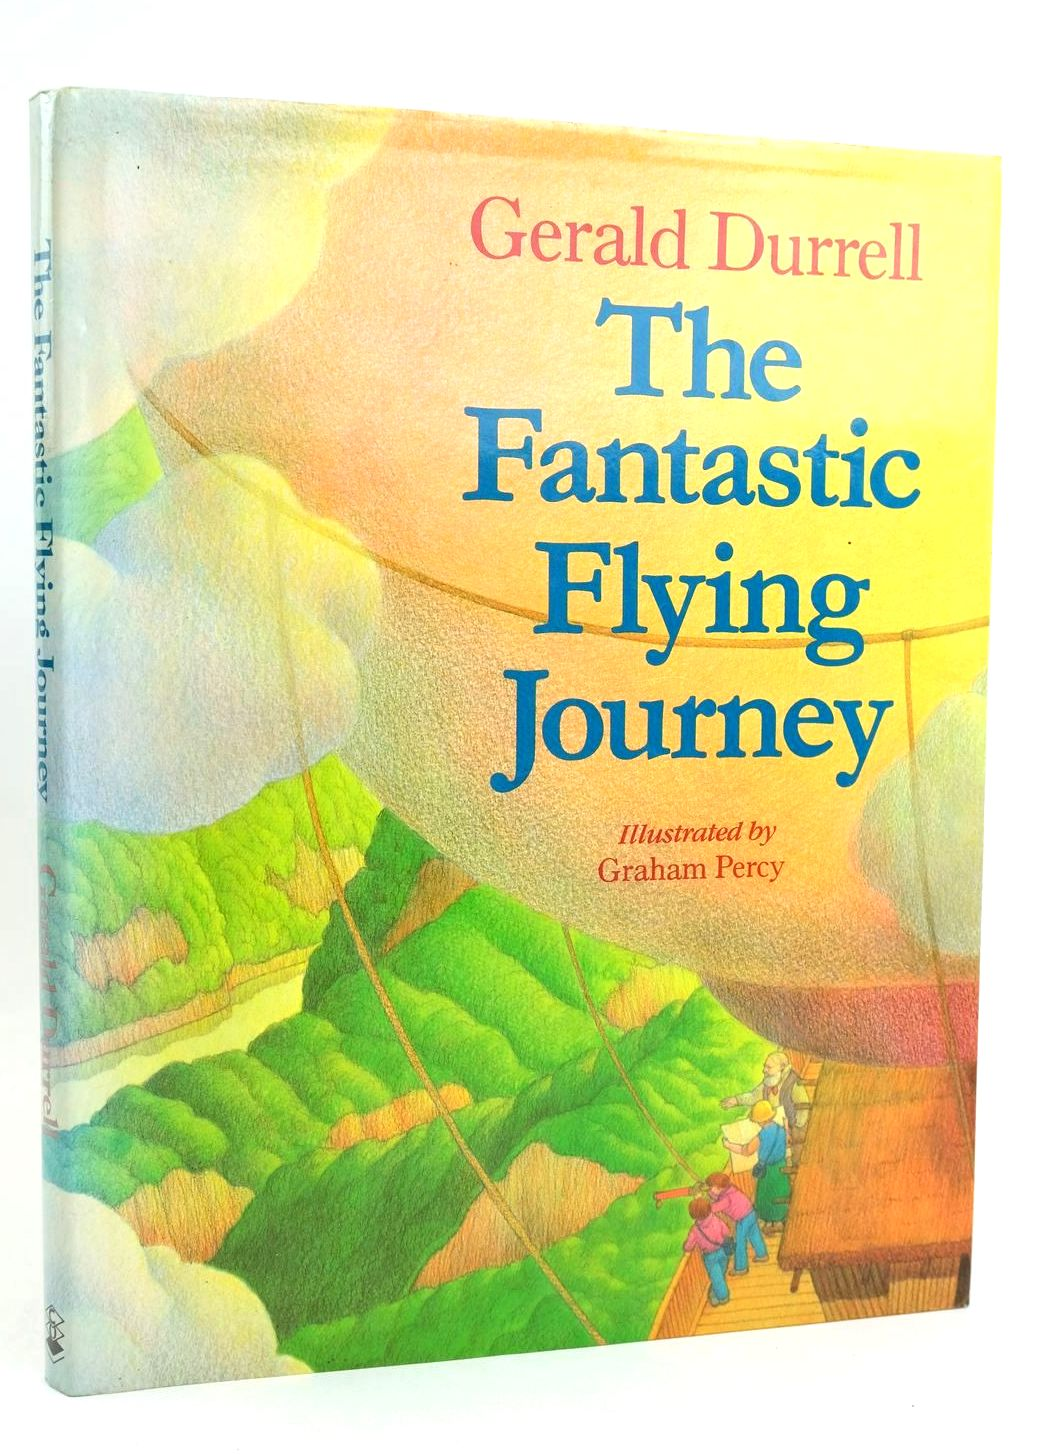 Photo of THE FANTASTIC FLYING JOURNEY written by Durrell, Gerald illustrated by Percy, Graham published by Conran Octopus Ltd. (STOCK CODE: 1318741)  for sale by Stella & Rose's Books